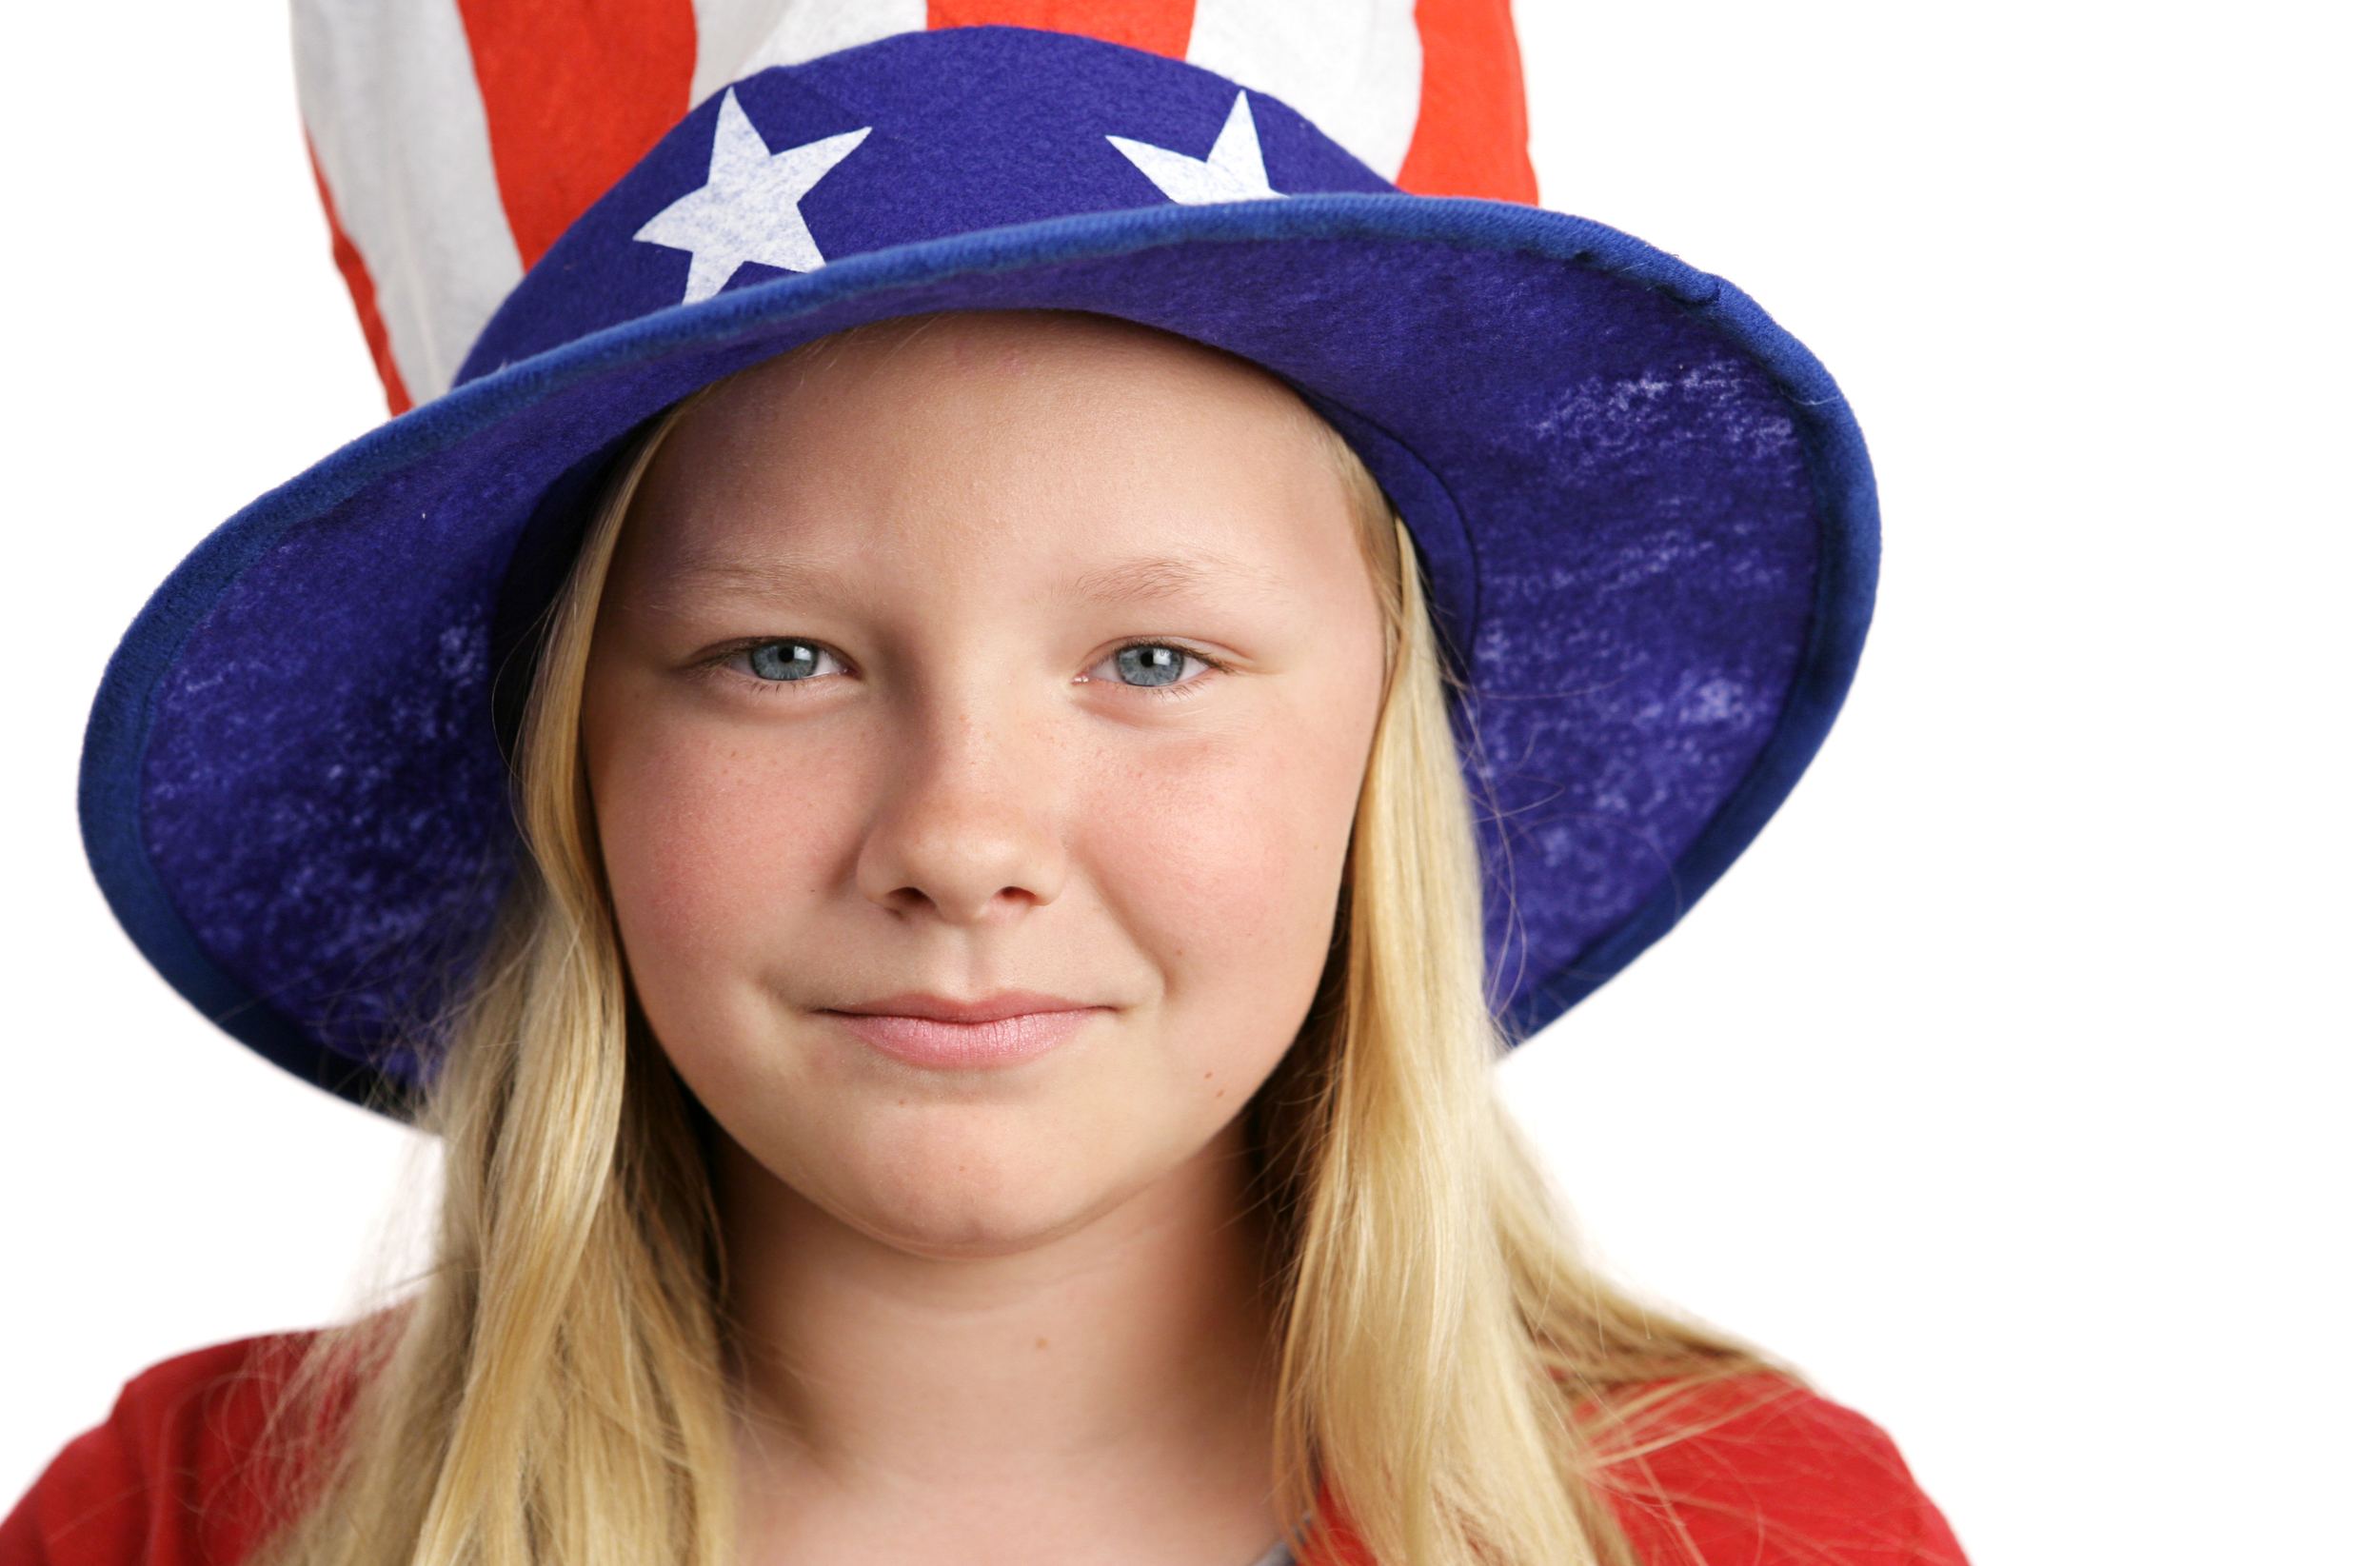 Young girl wearing an American flag-like hat